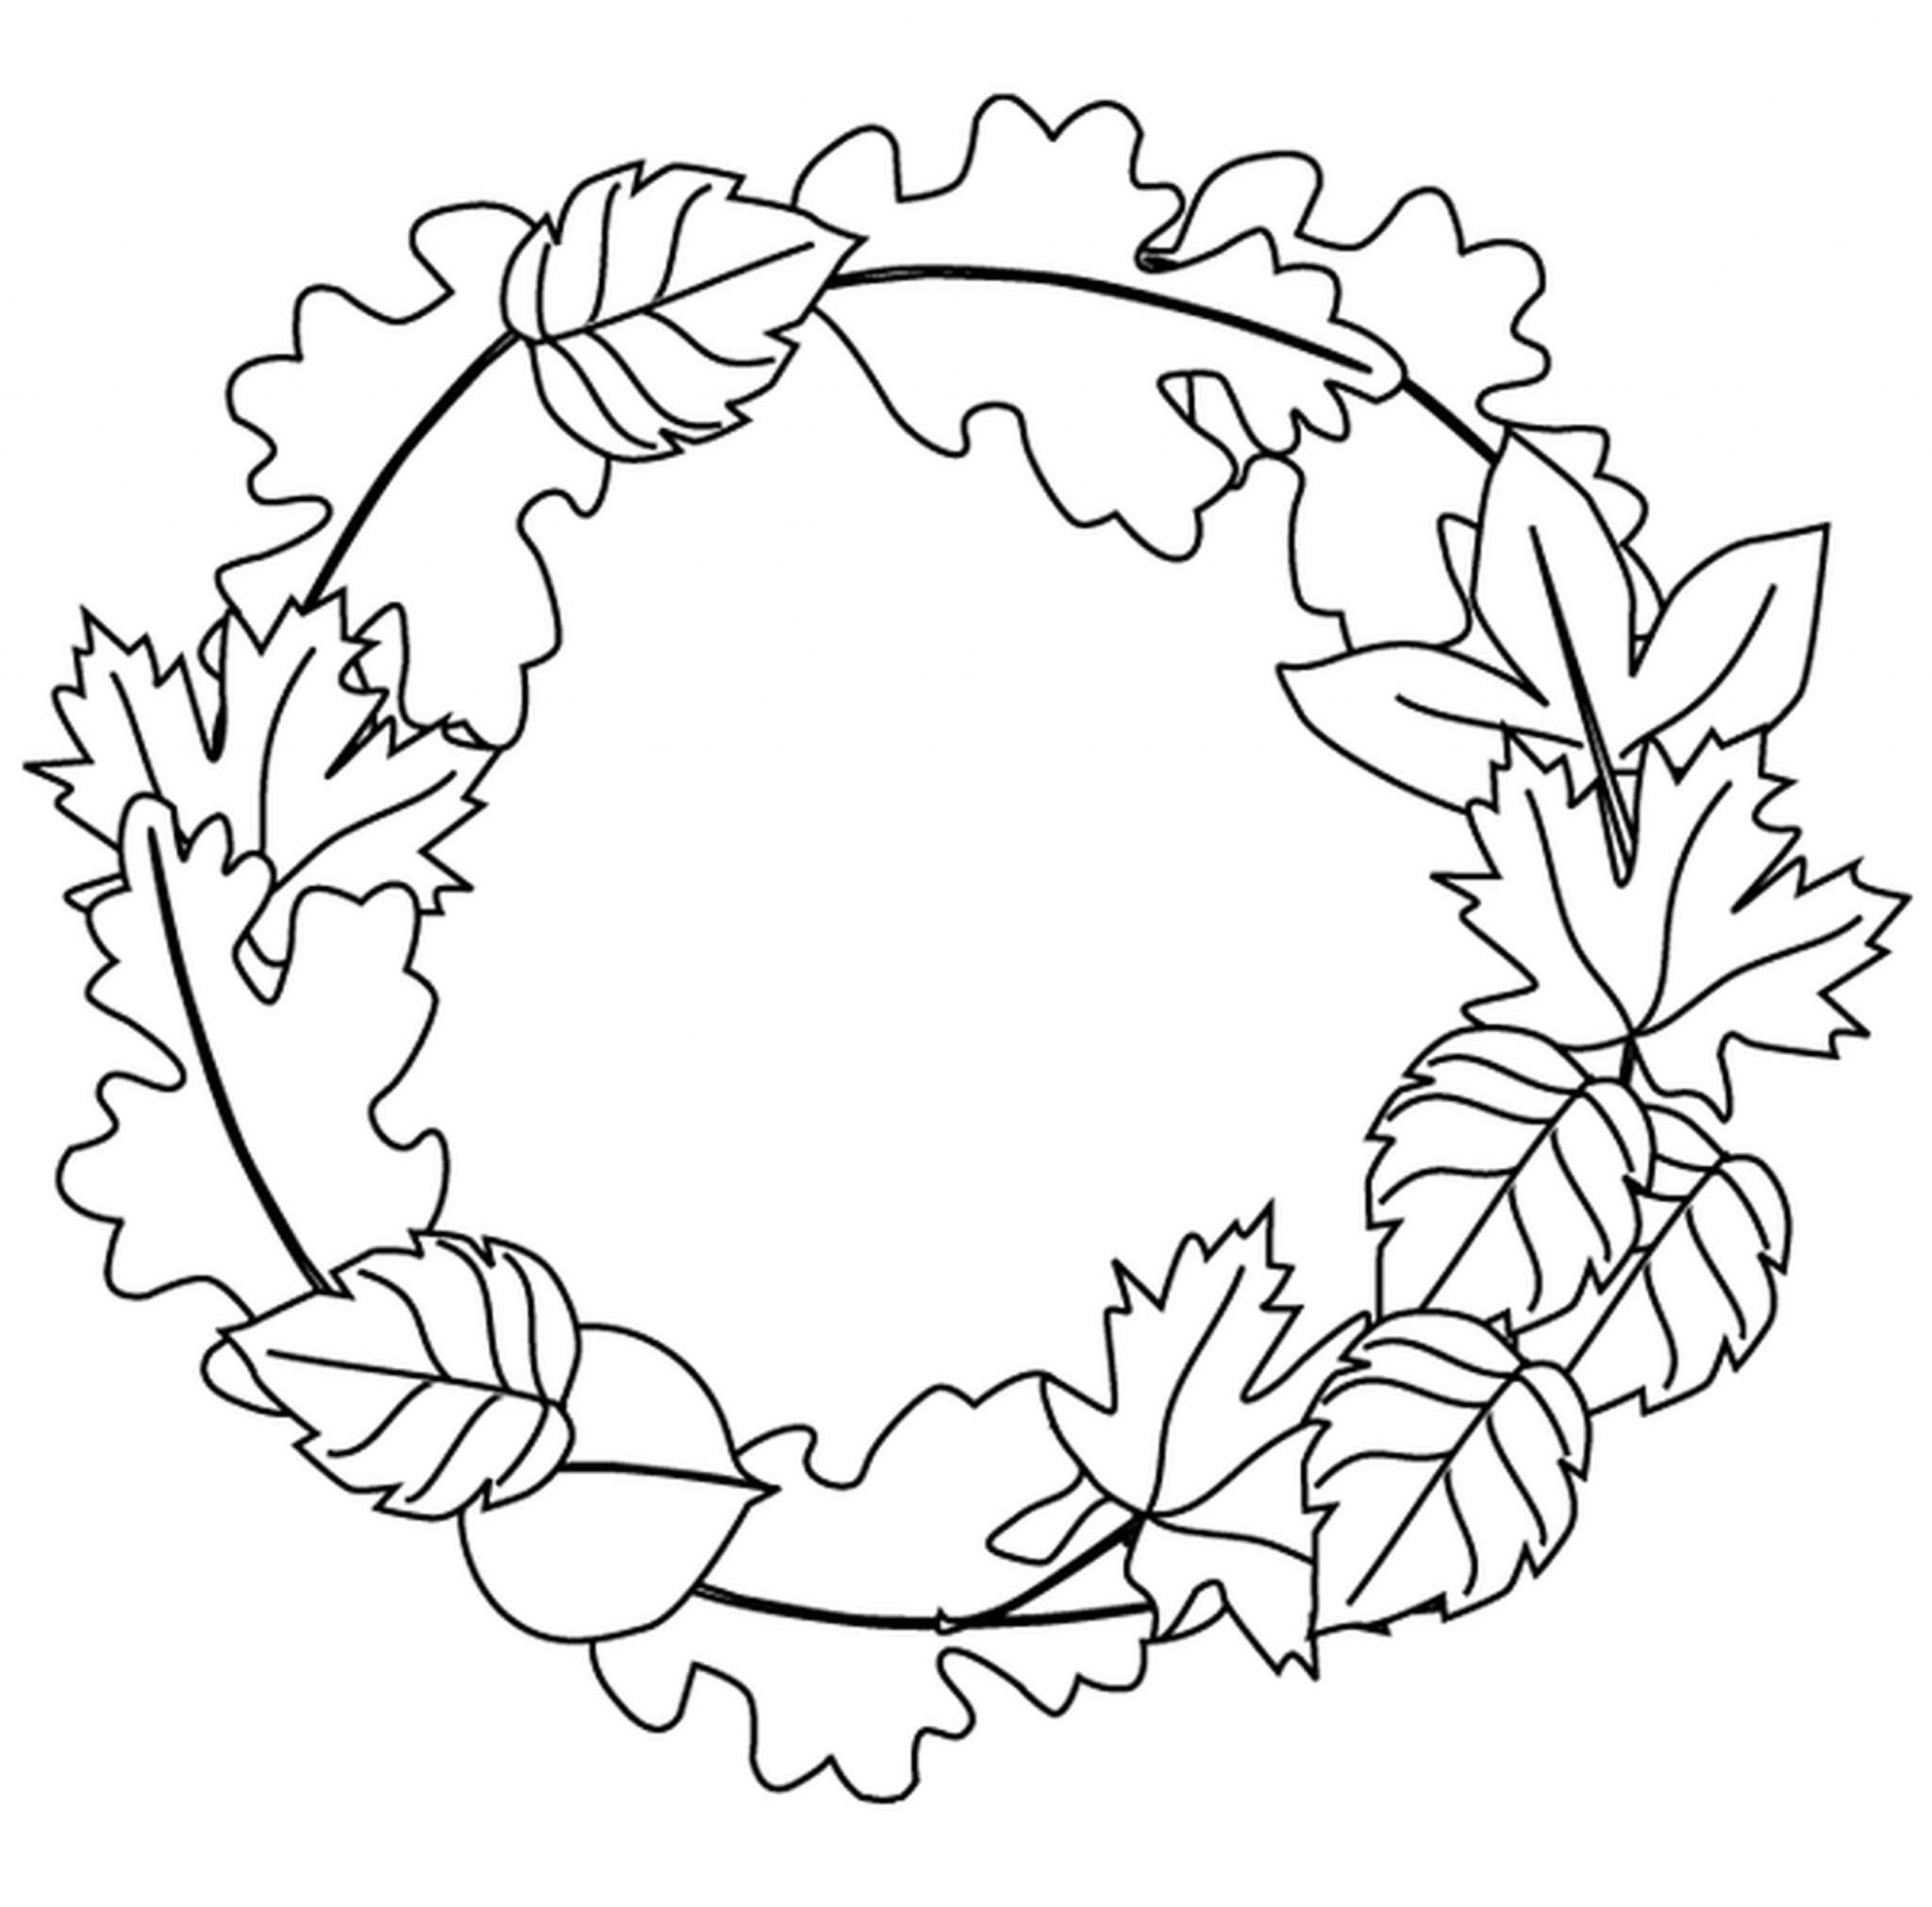 coloring sheet leaves fall coloring pages getcoloringpagescom coloring sheet leaves